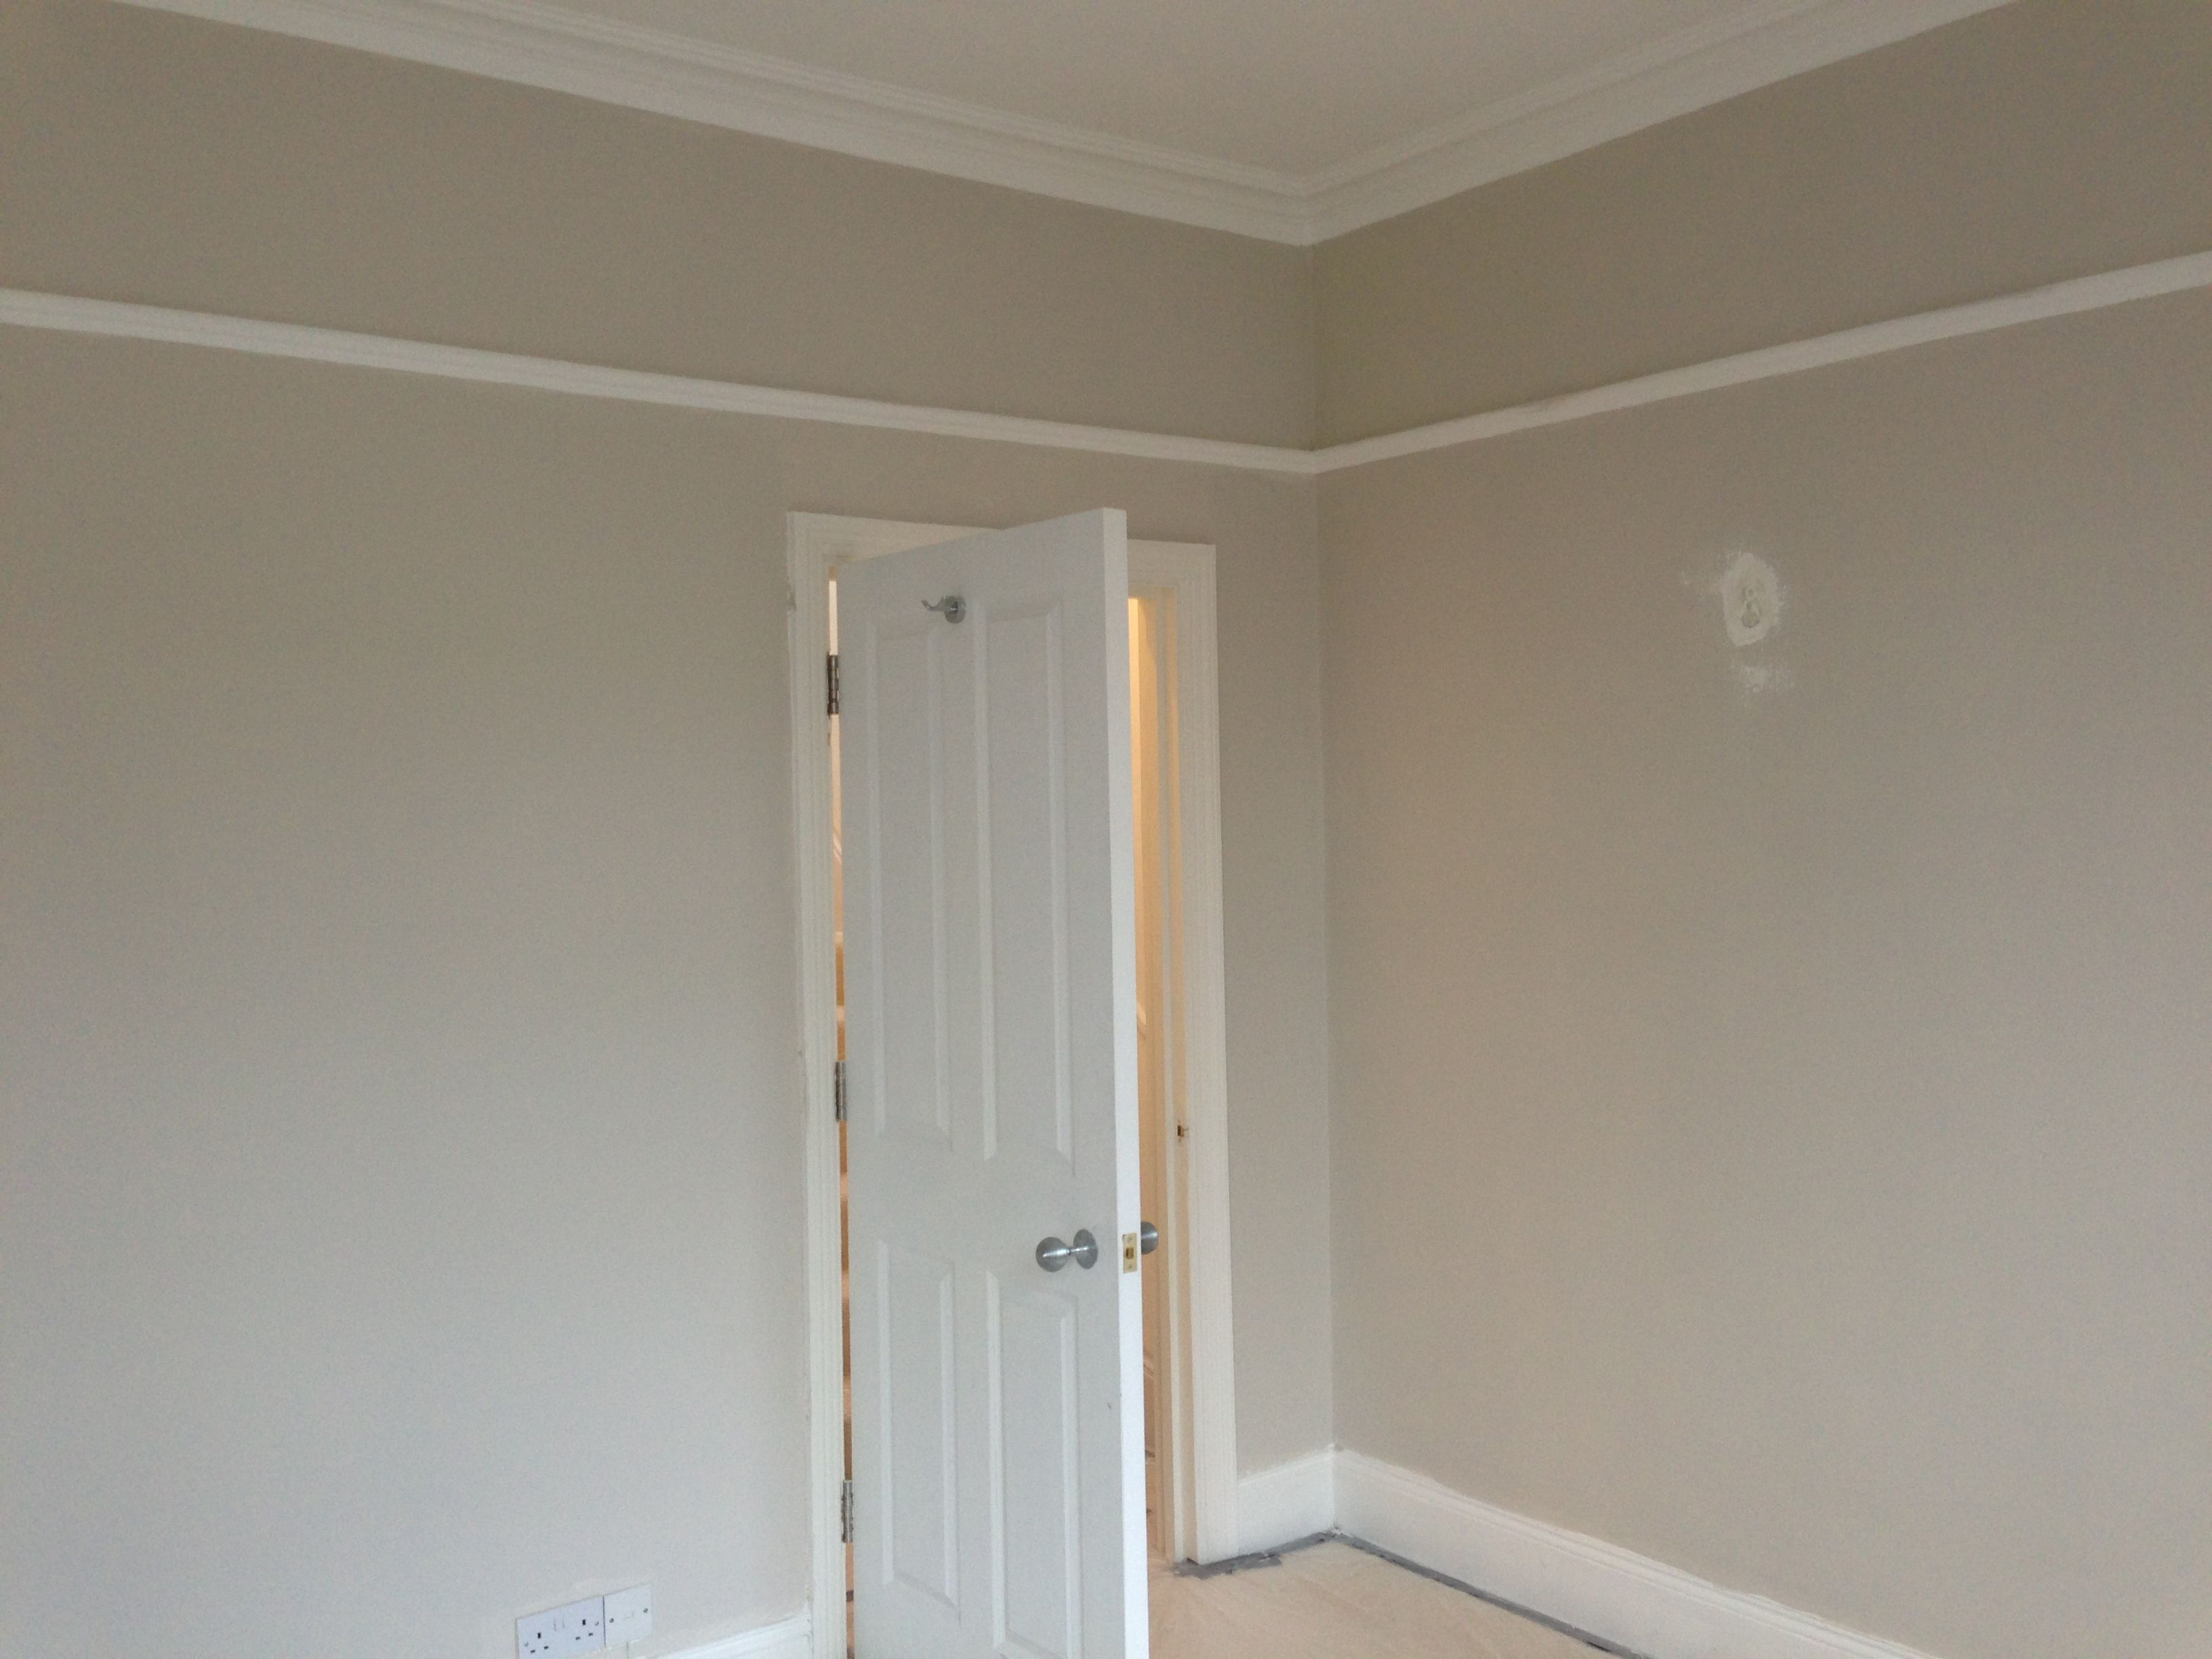 Farrow And Ball Skimming Stone Skimming Stone Farrow And Ball Came Out Way Too Beige And